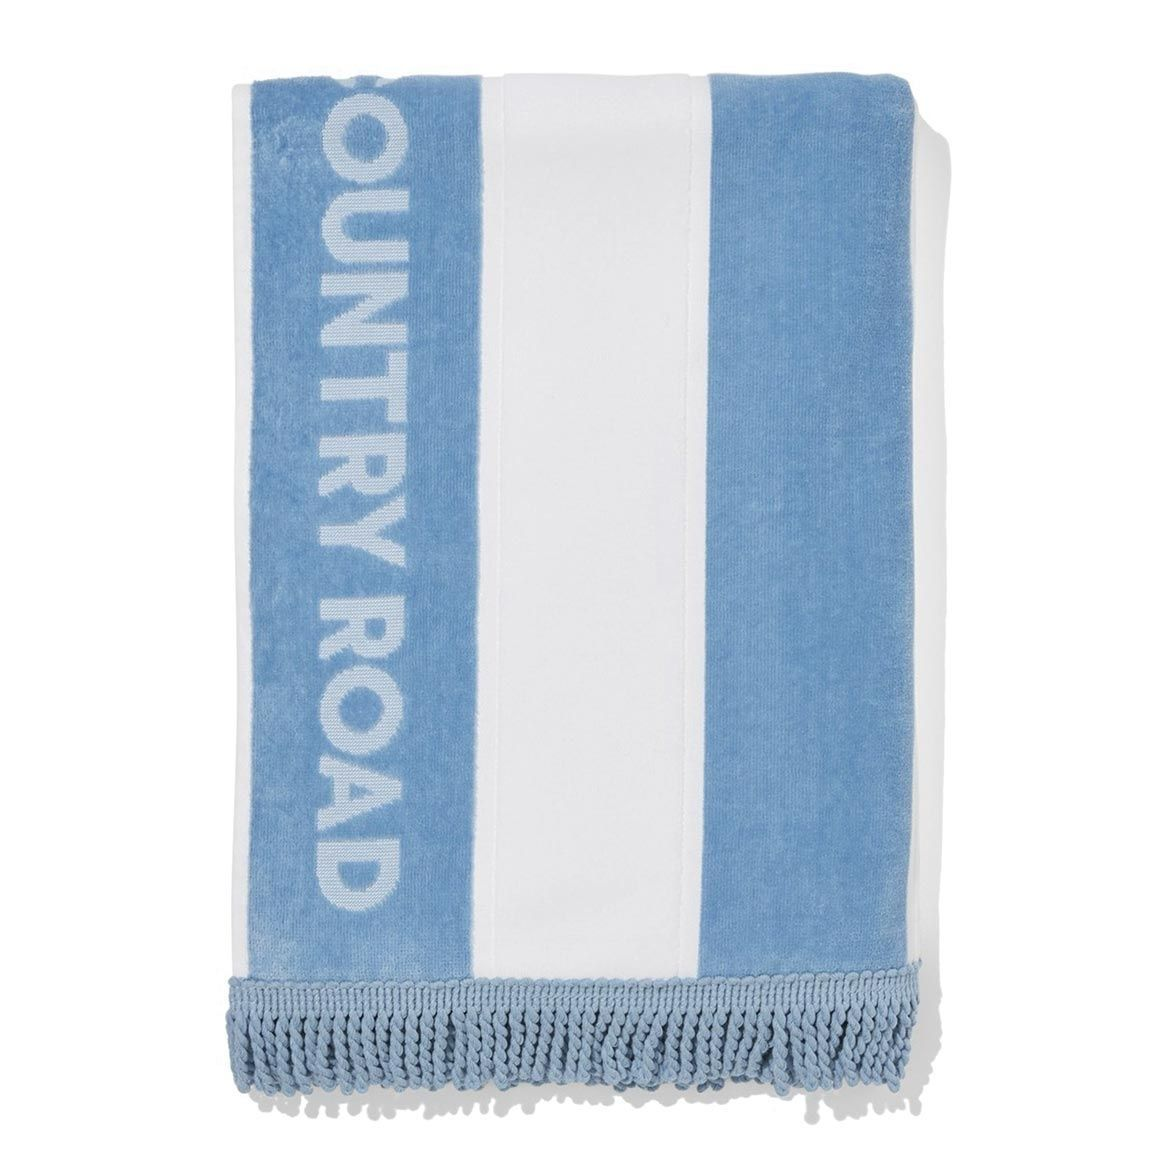 Country Road Beau Beach Towel Woolworths Co Za Beach Towel Towel Collection Towel